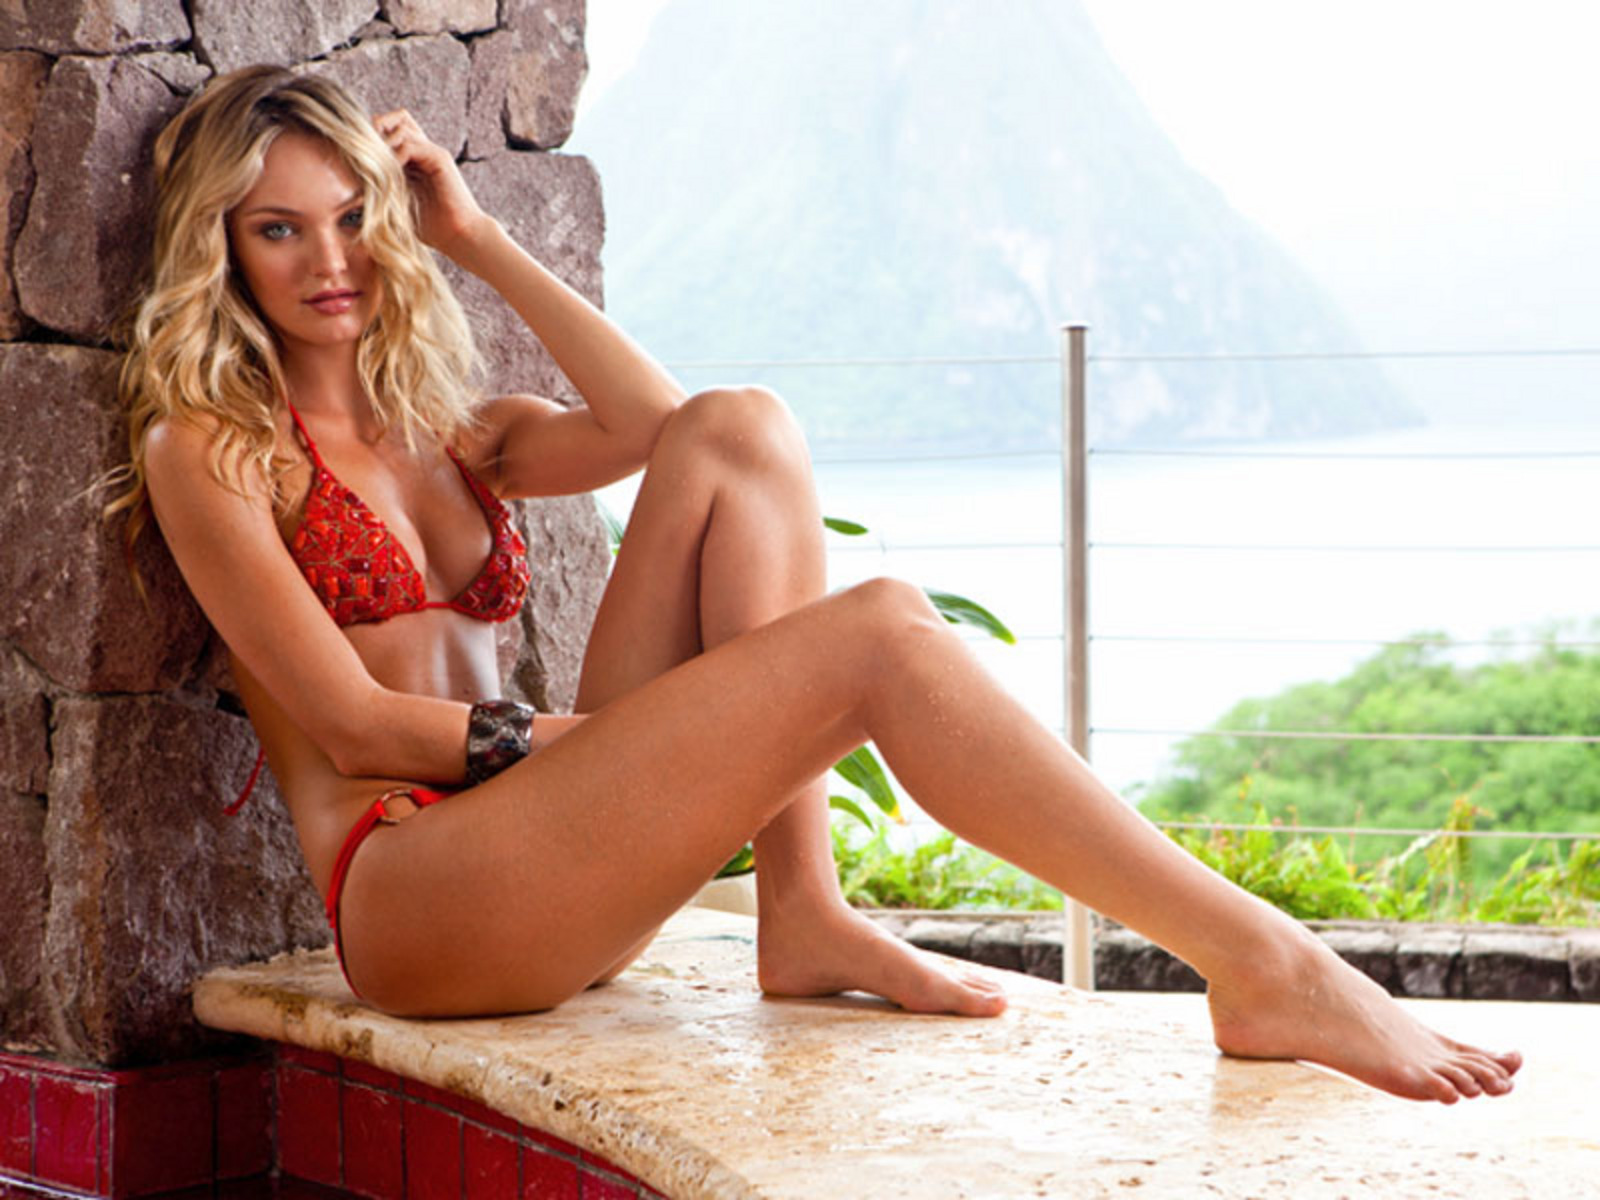 Candice Swanepoel 2 Wallpaper